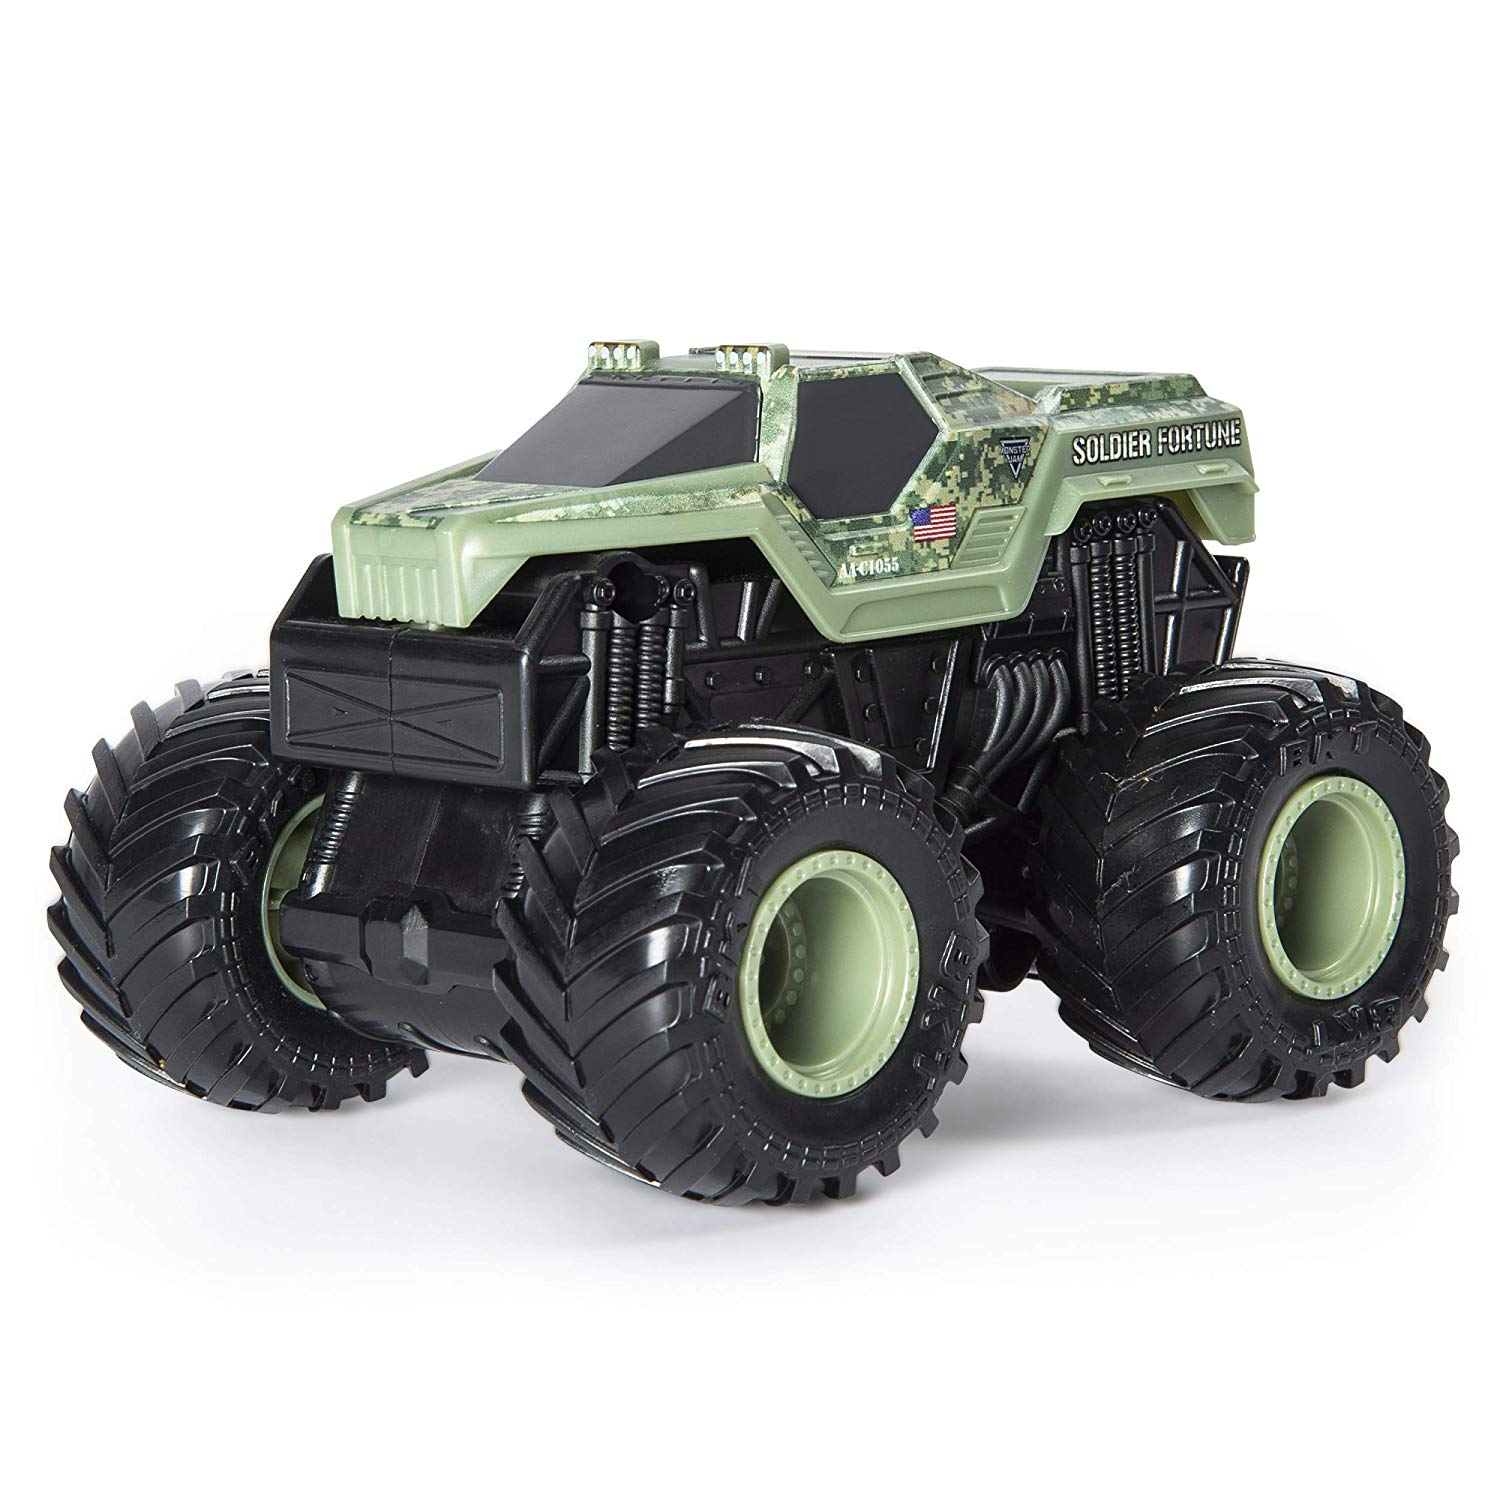 Monster Jam - Soldier Fortune com Som - Escala 1:43